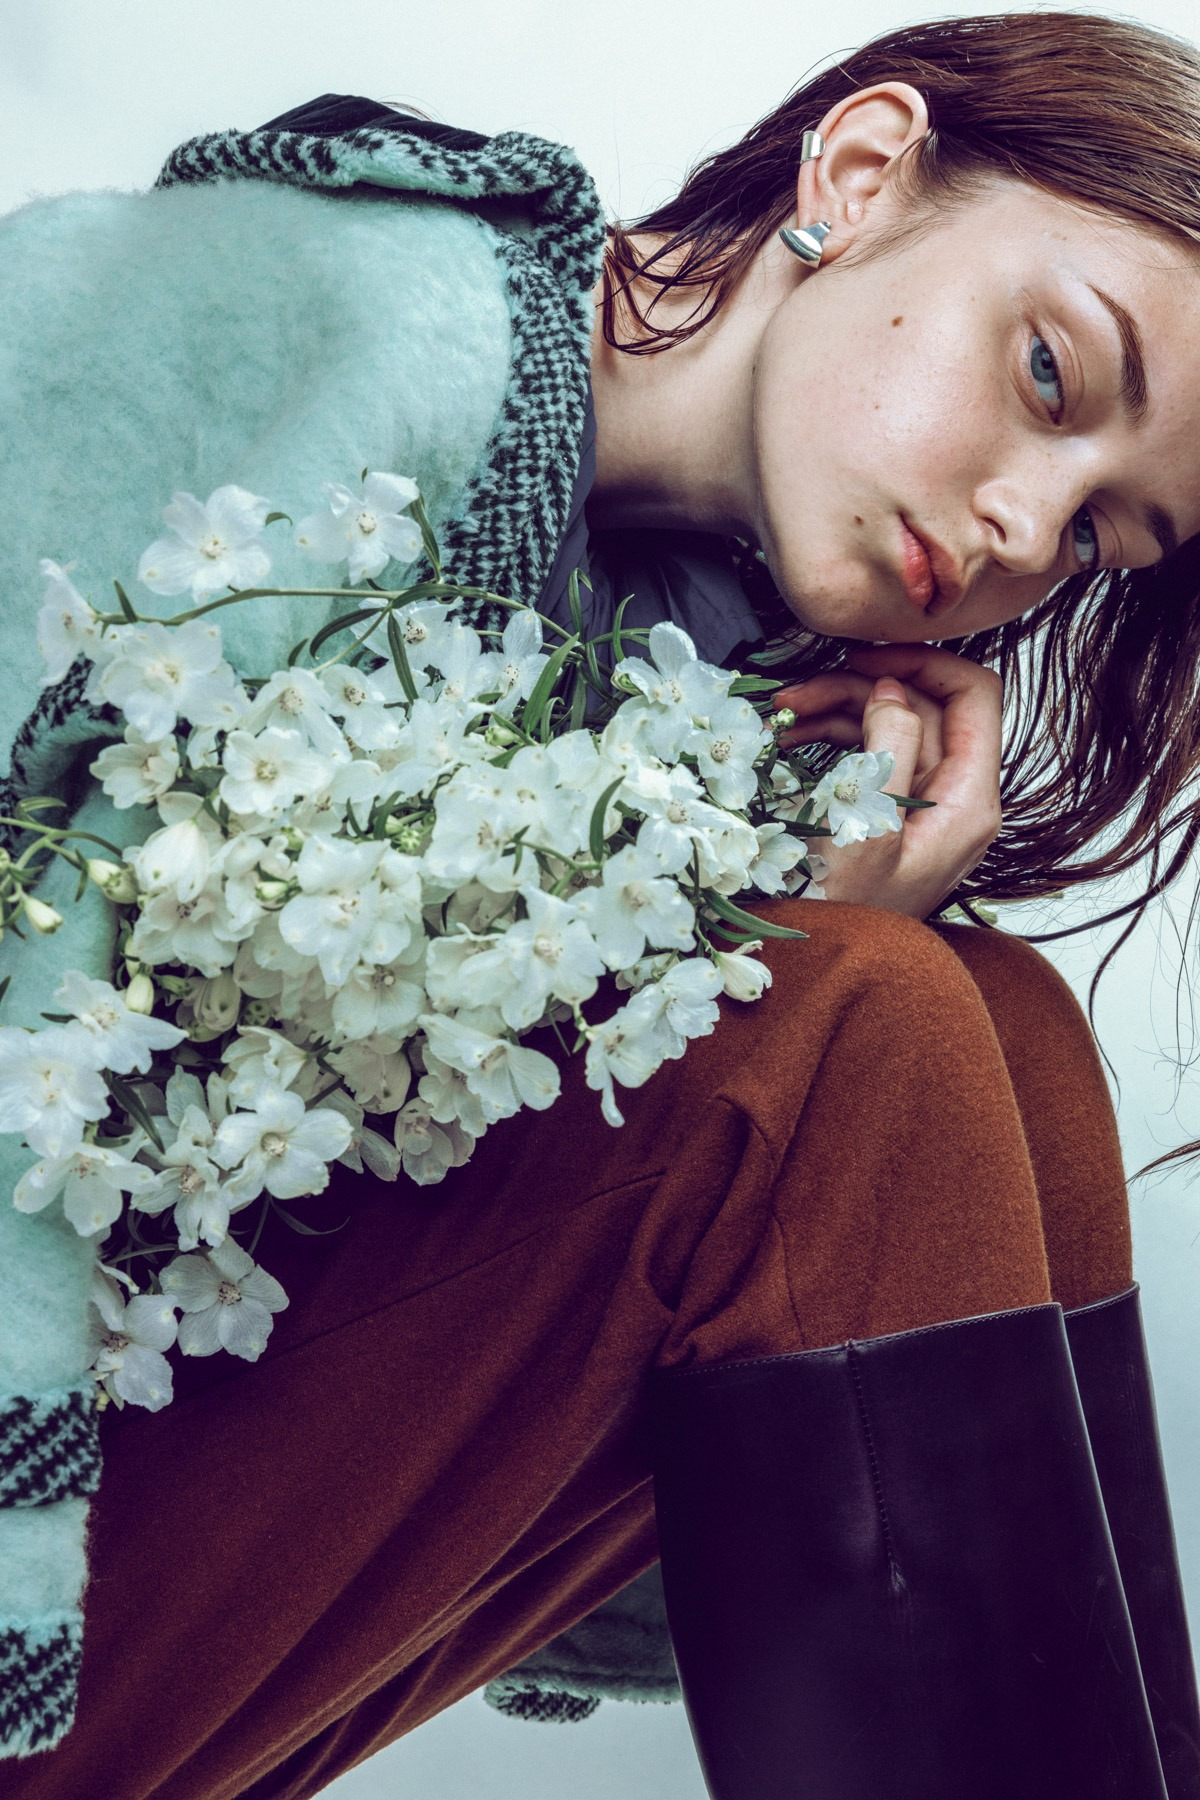 anmoda models tokyo alyona wearing a vintage pea coat and dlaw jewelry, holding flowers in a studio in tokyo